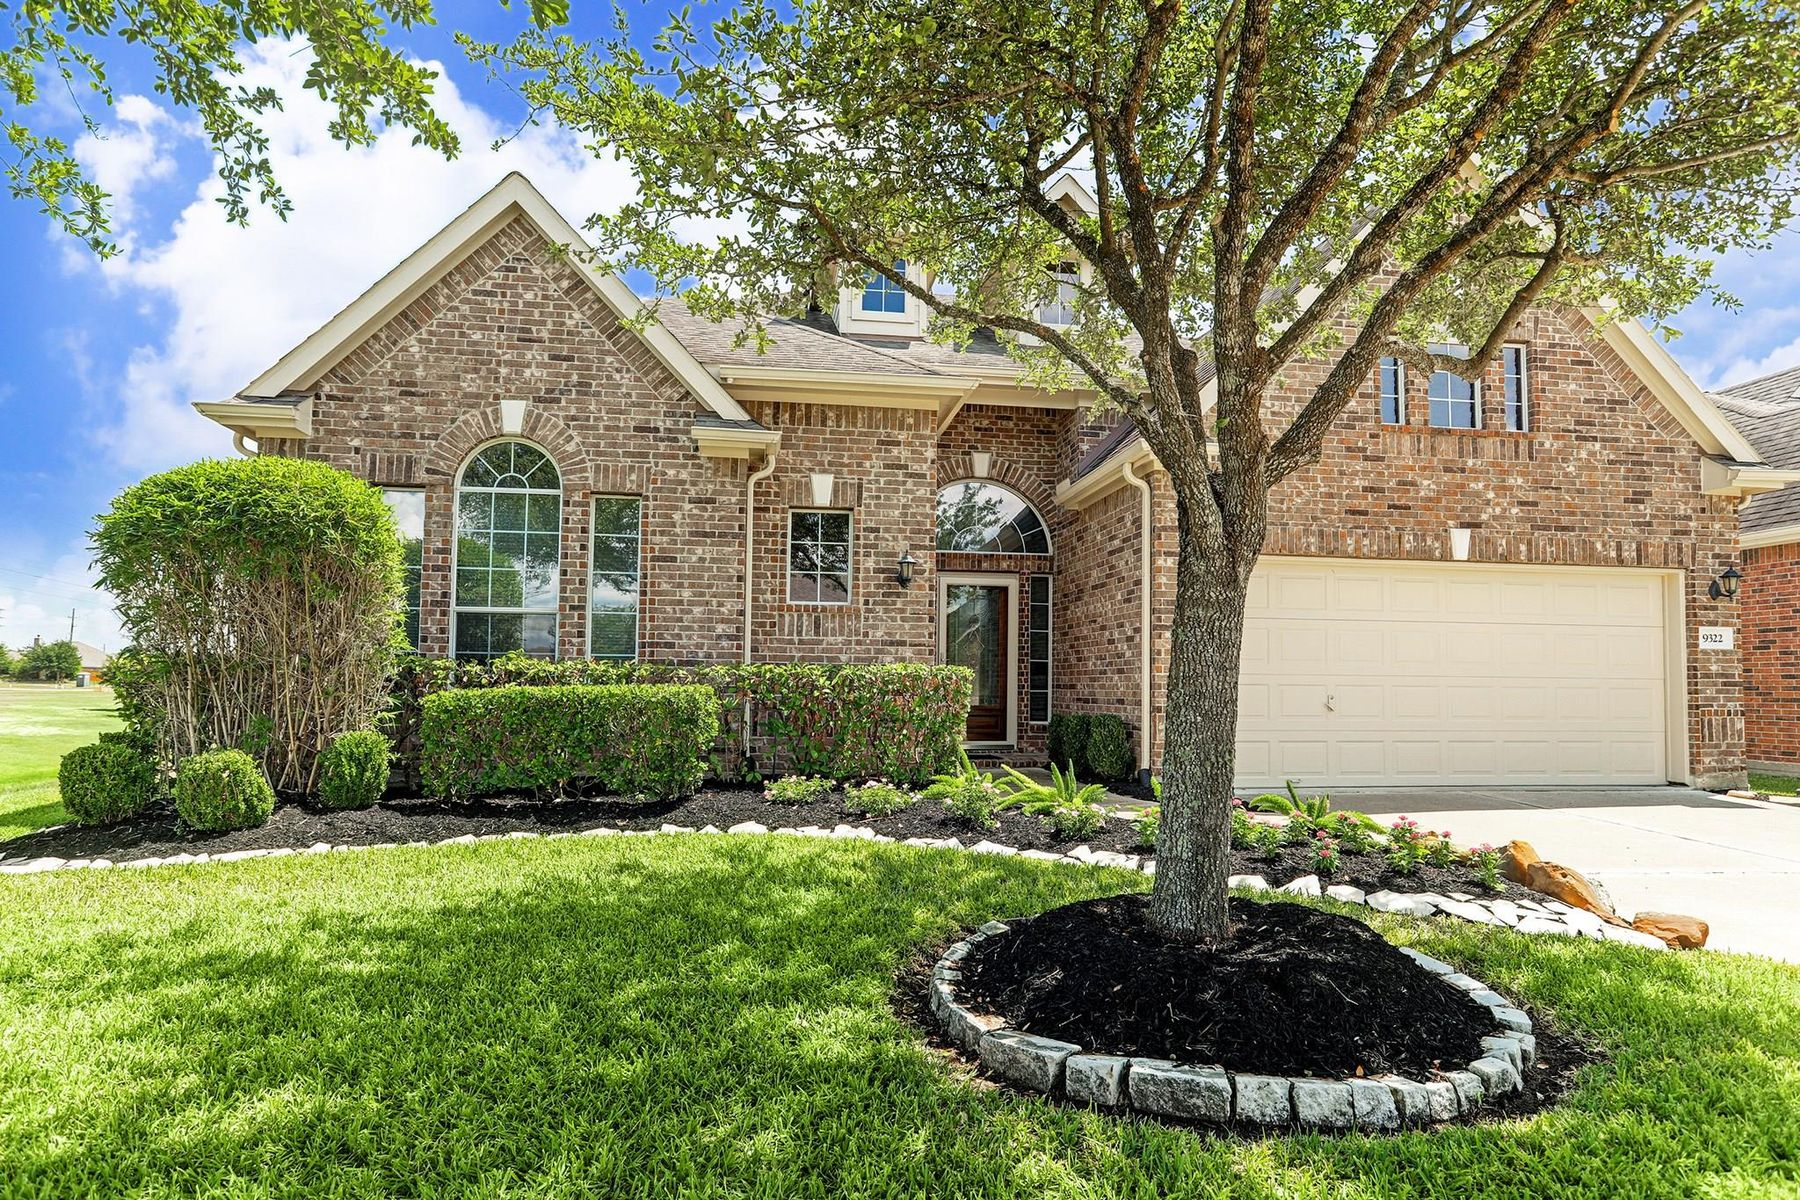 Single Family Homes for Sale at 9322 Caddo Springs Court Cypress, Texas 77433 United States